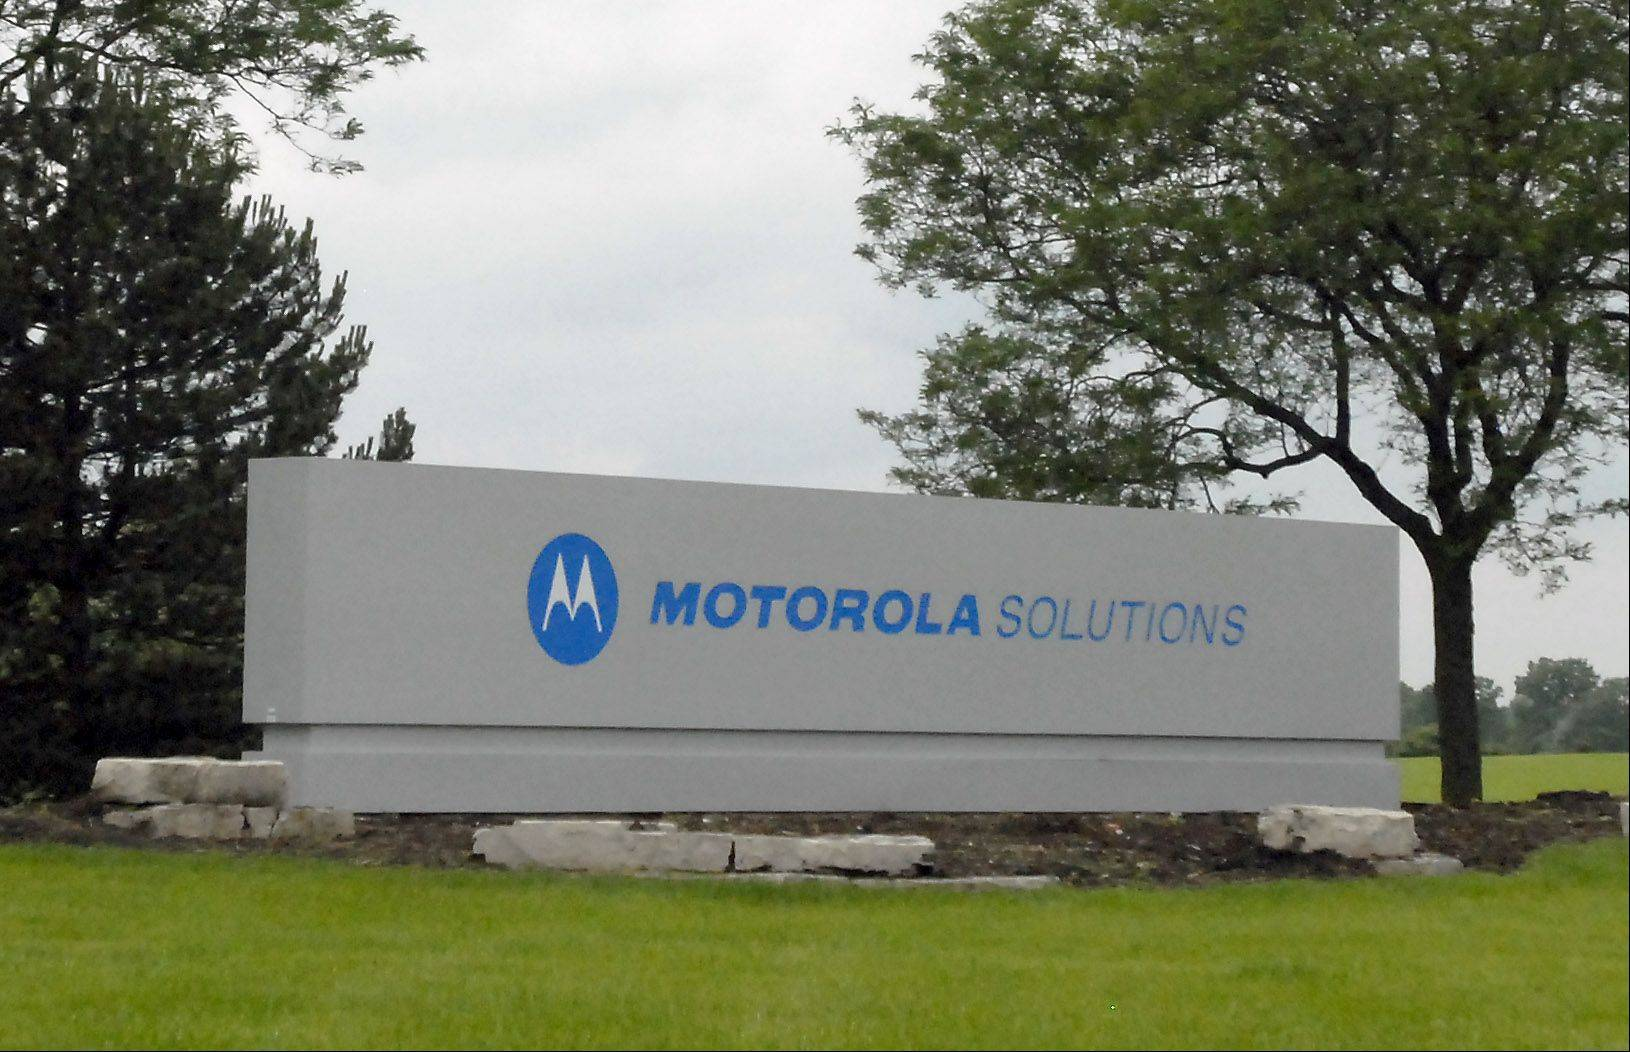 Motorola Solutions profits down, but growth anticipated